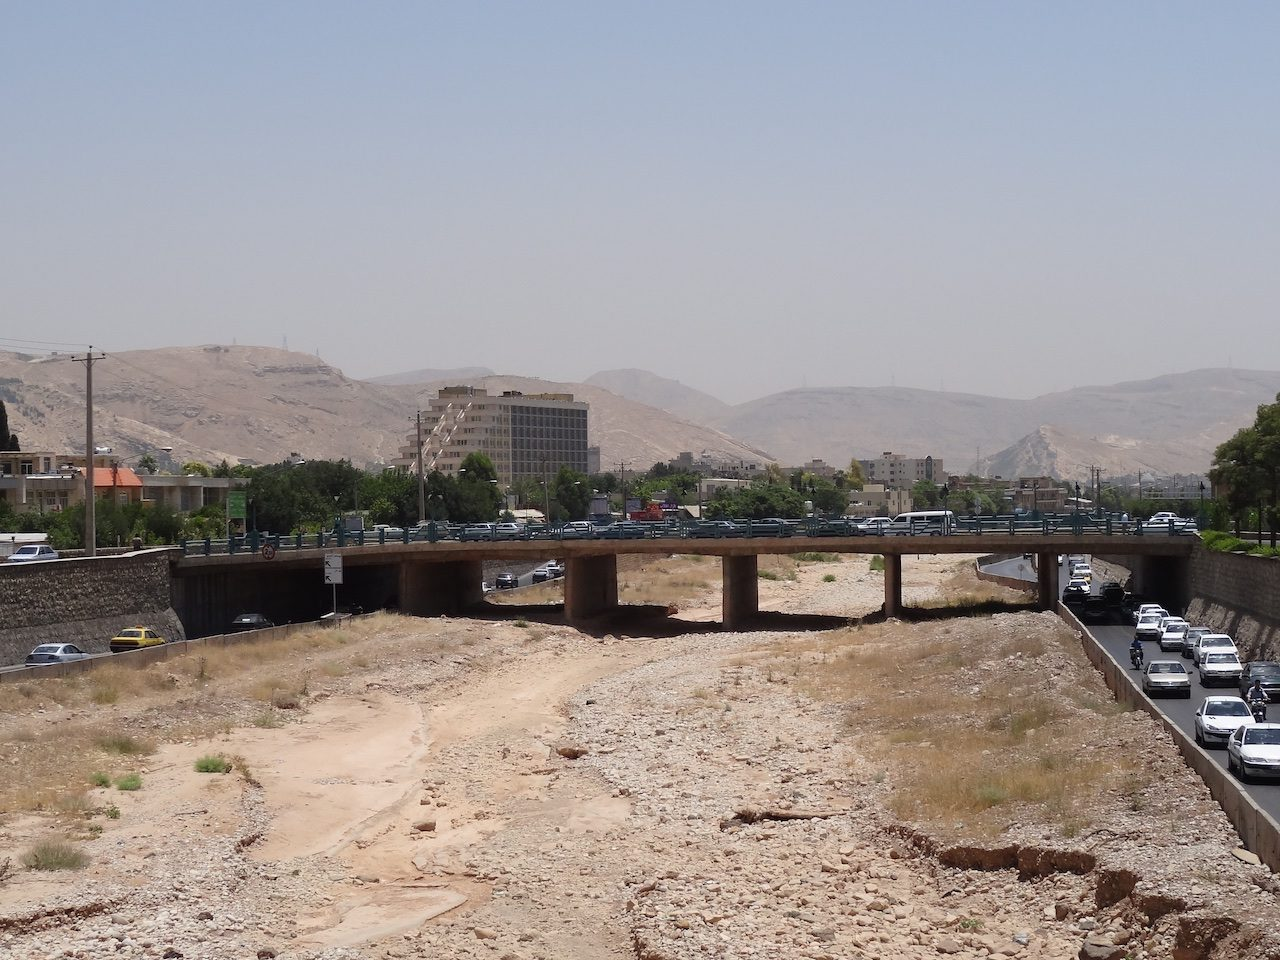 The appropriately named Dry River - Homa Hotel in the background on the left